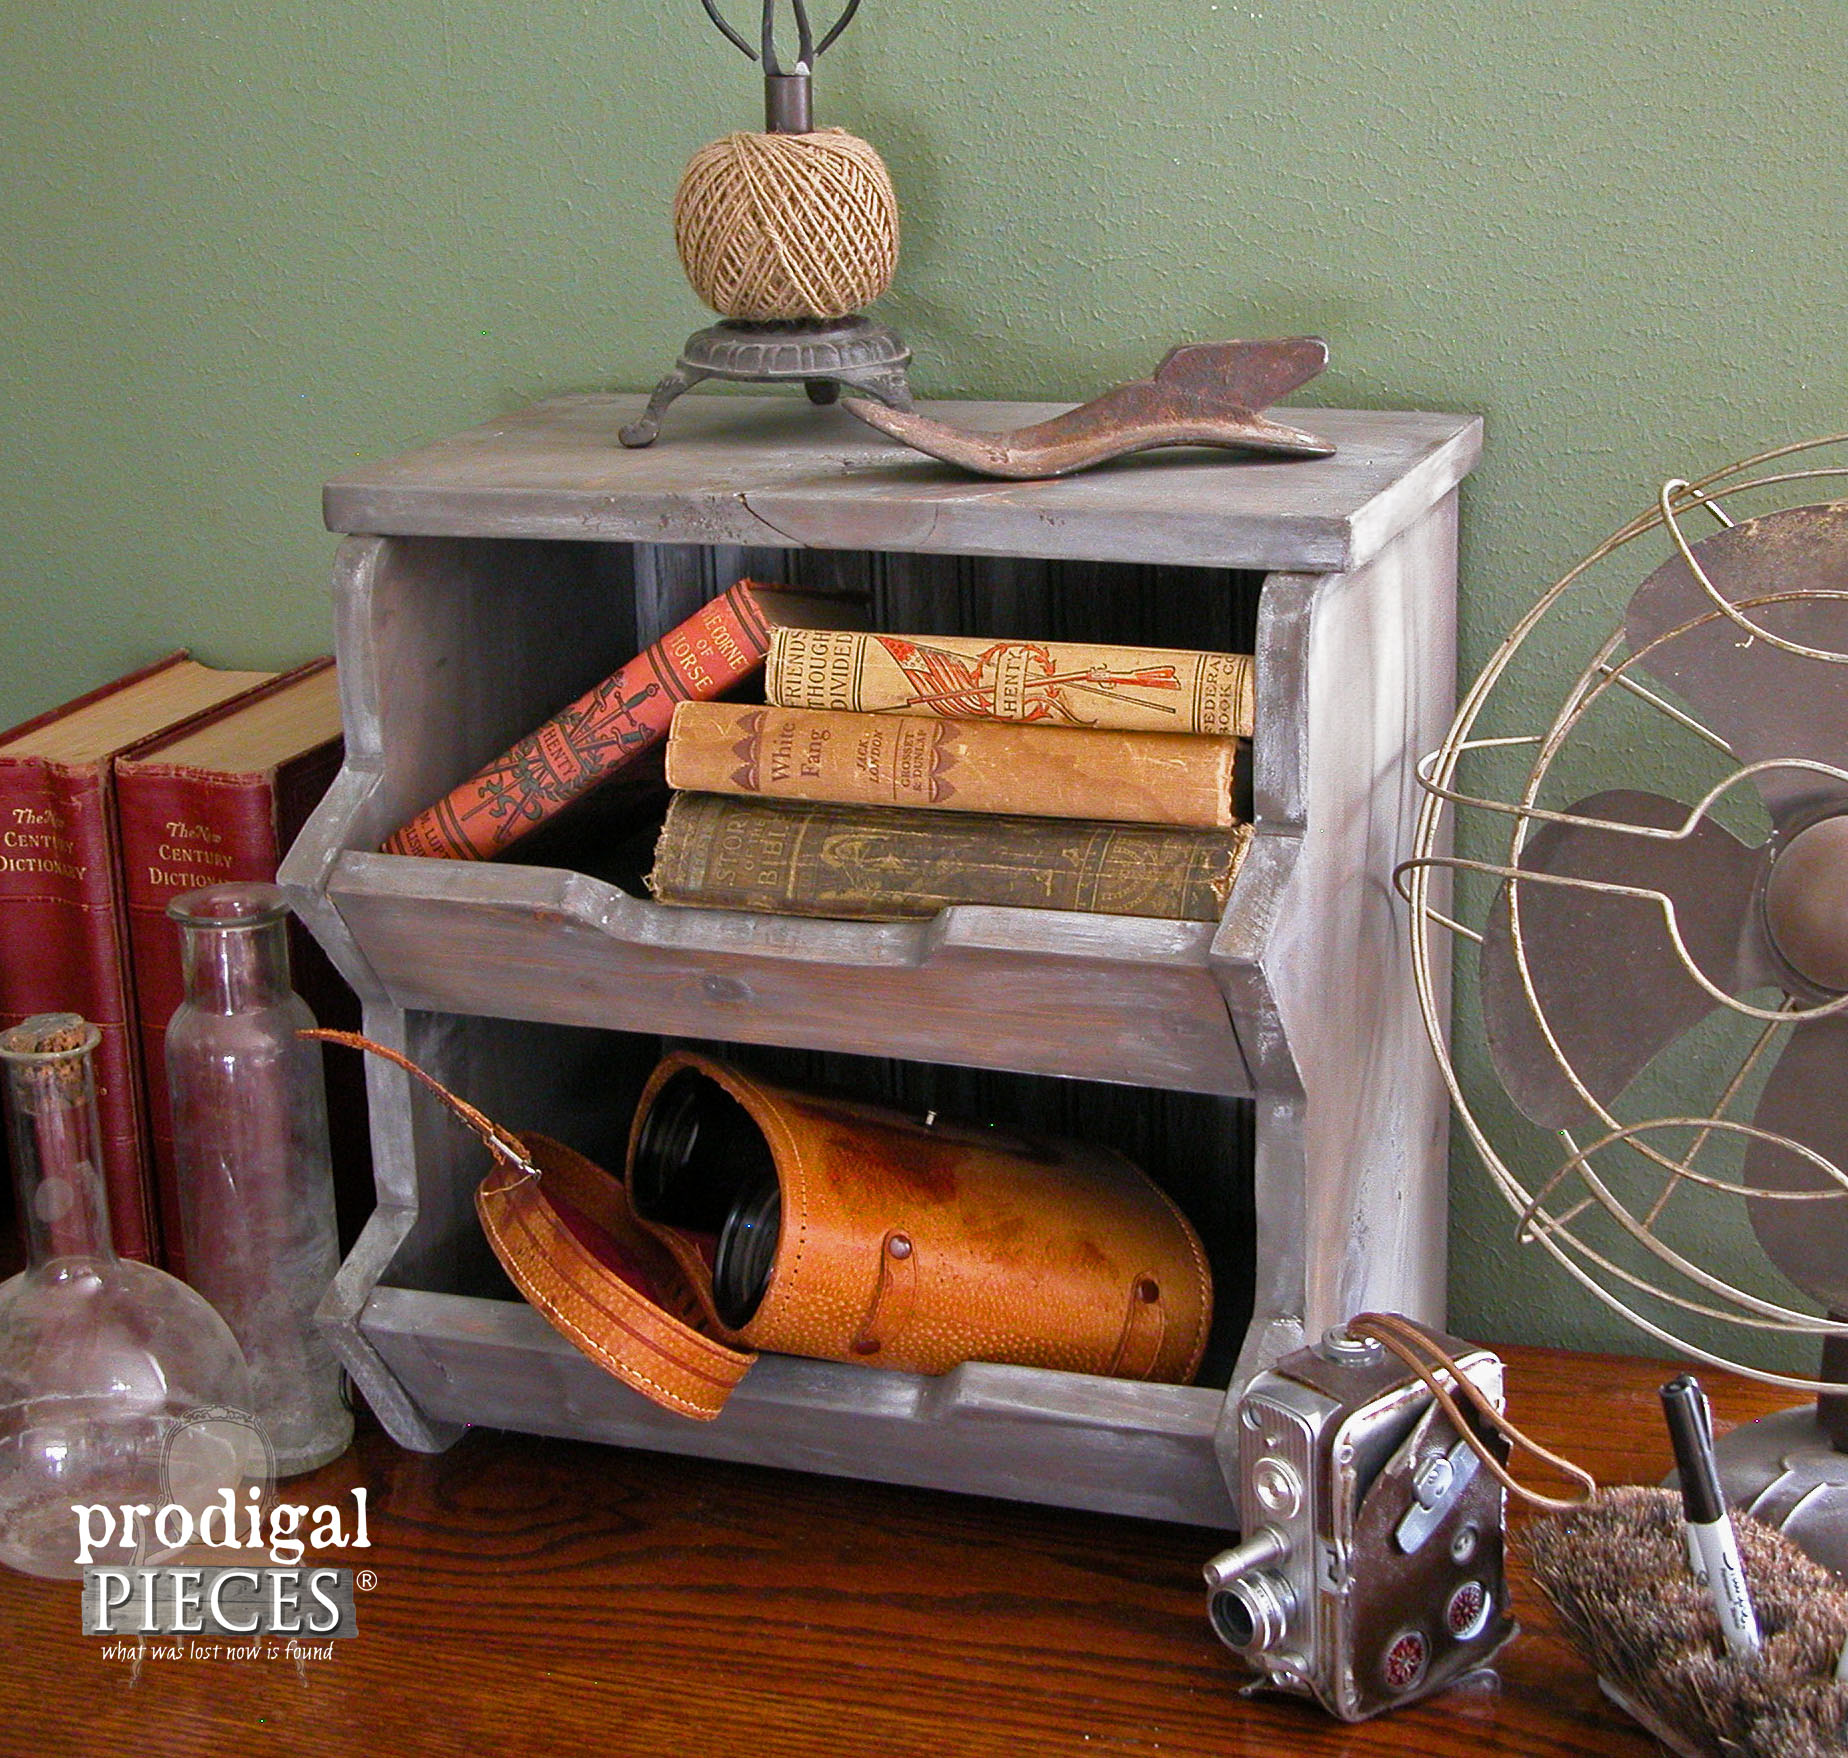 Desk Top Storage Bin with Plans to Build Your Own by Prodigal Pieces | www.prodigalpieces.com